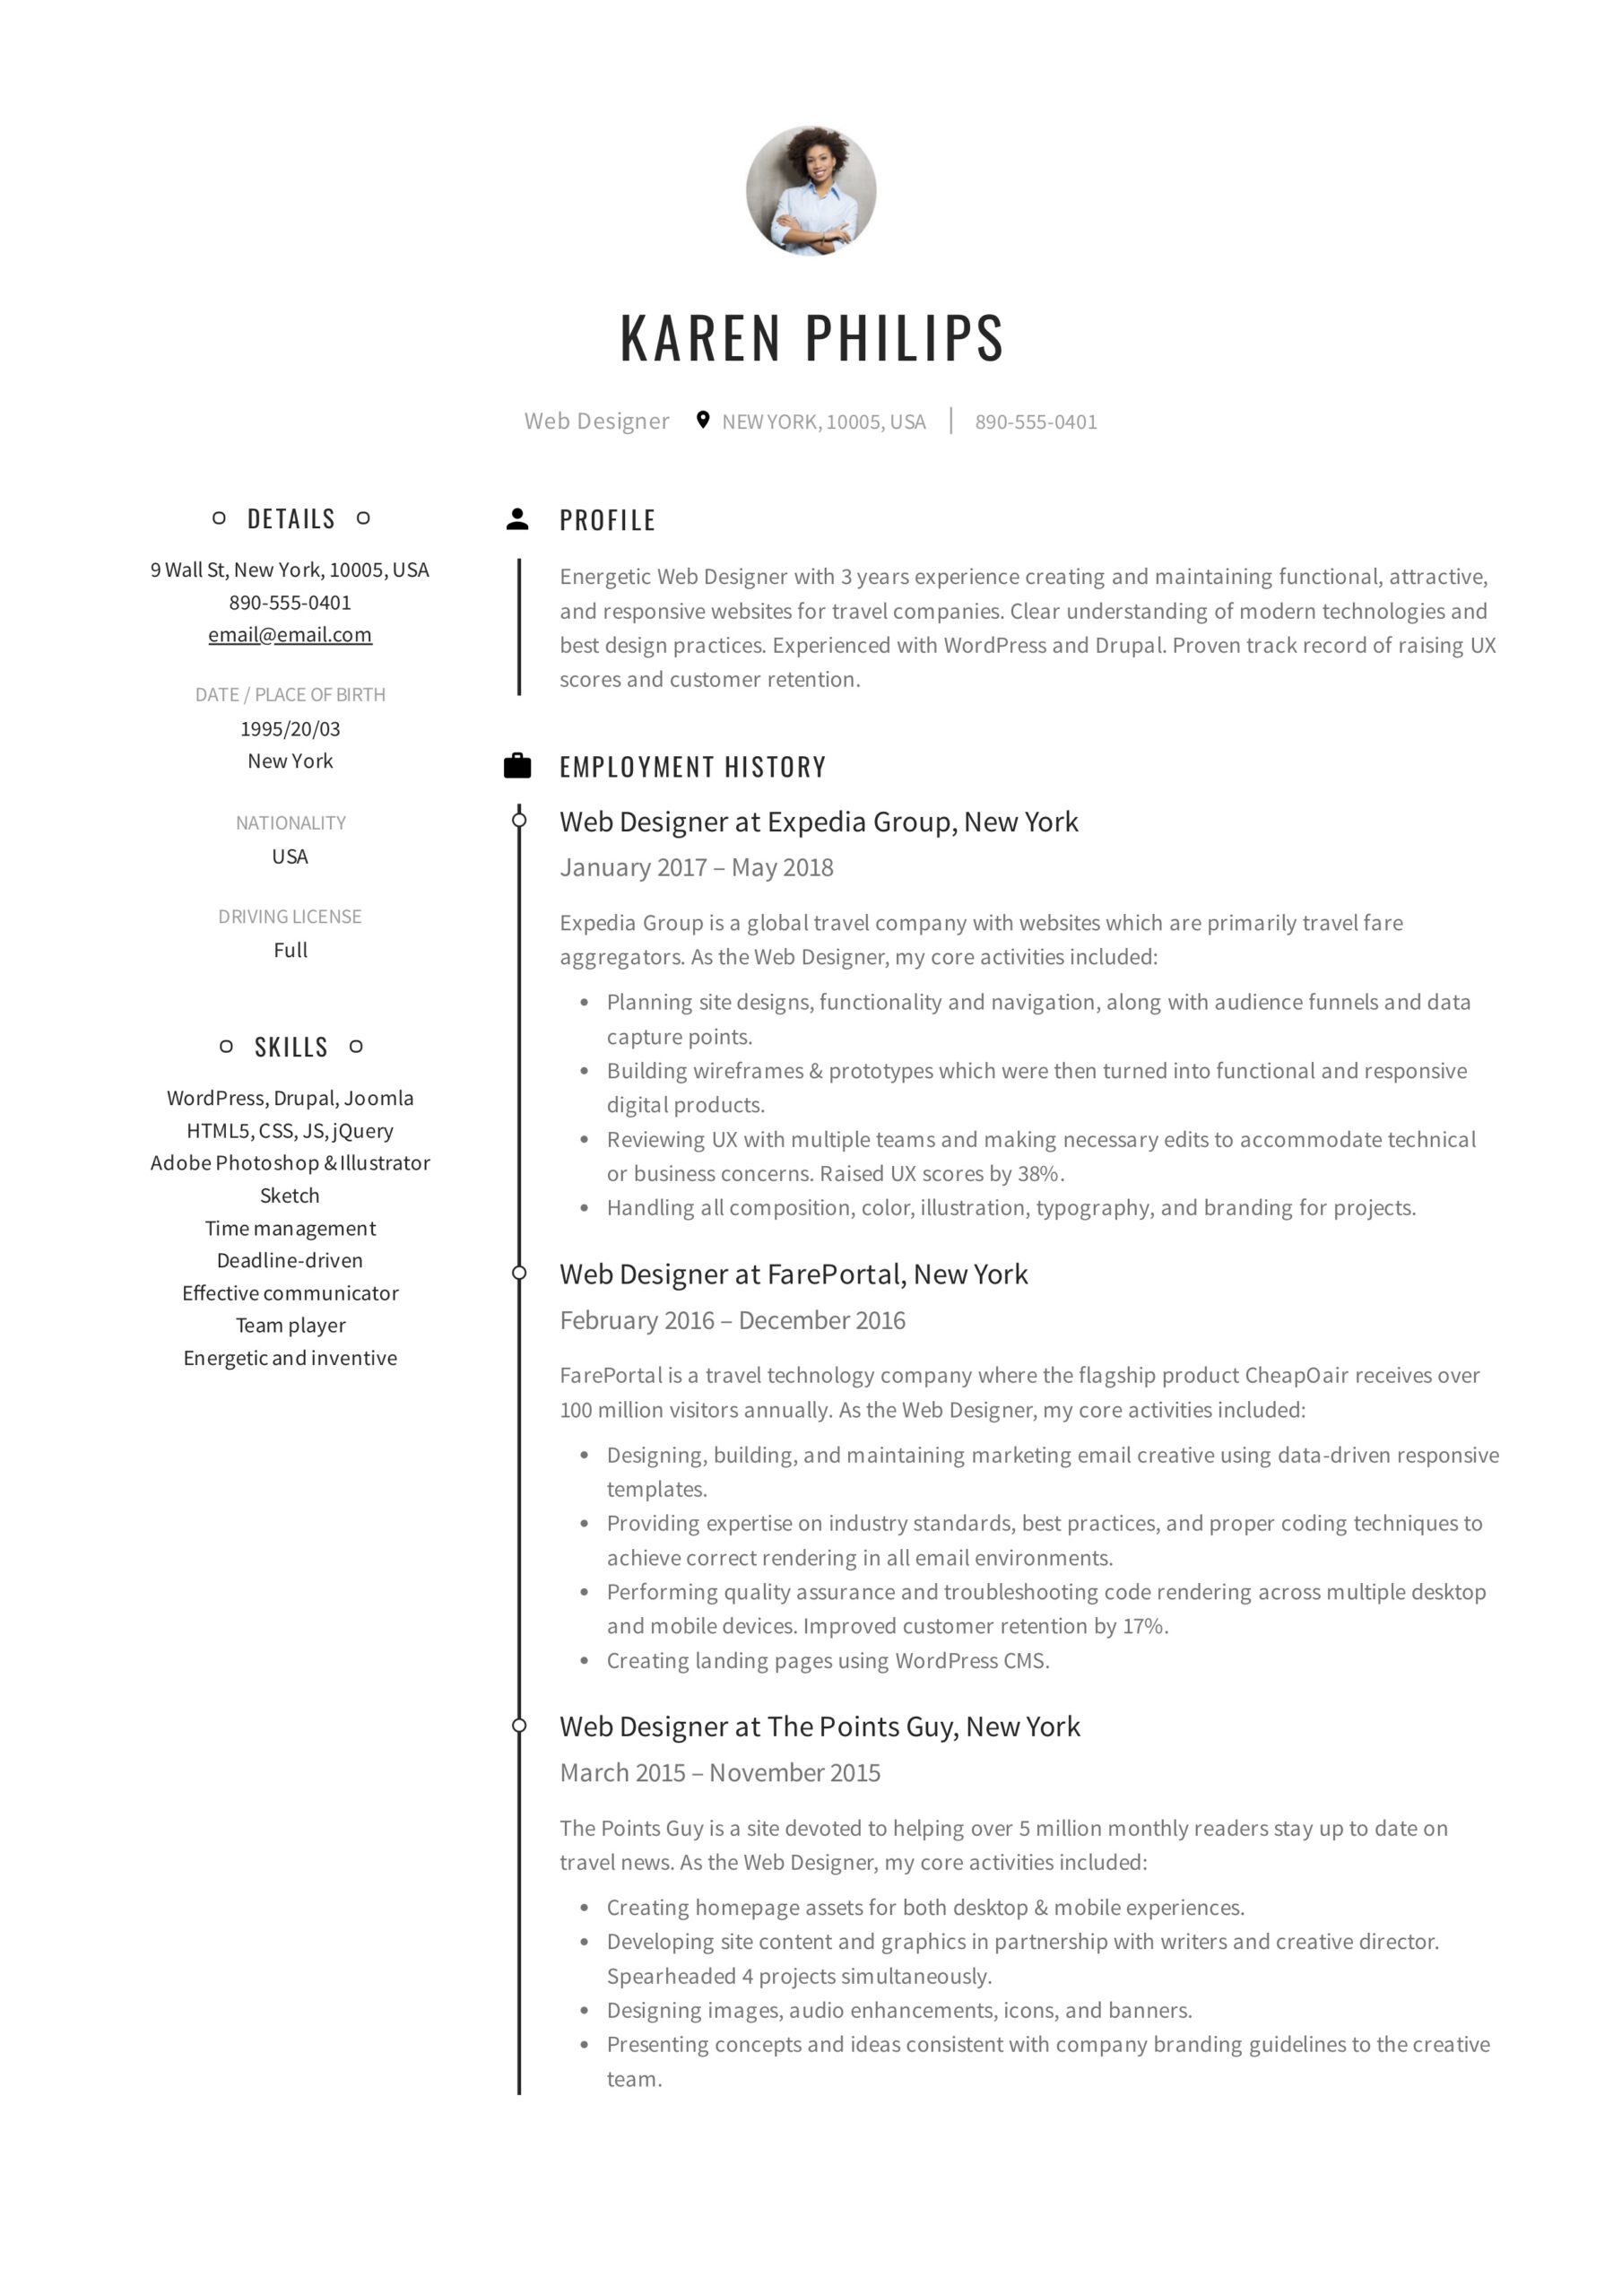 resume templates pdf word free downloads and guides of government employee karen philips Resume Resume Of Government Employee